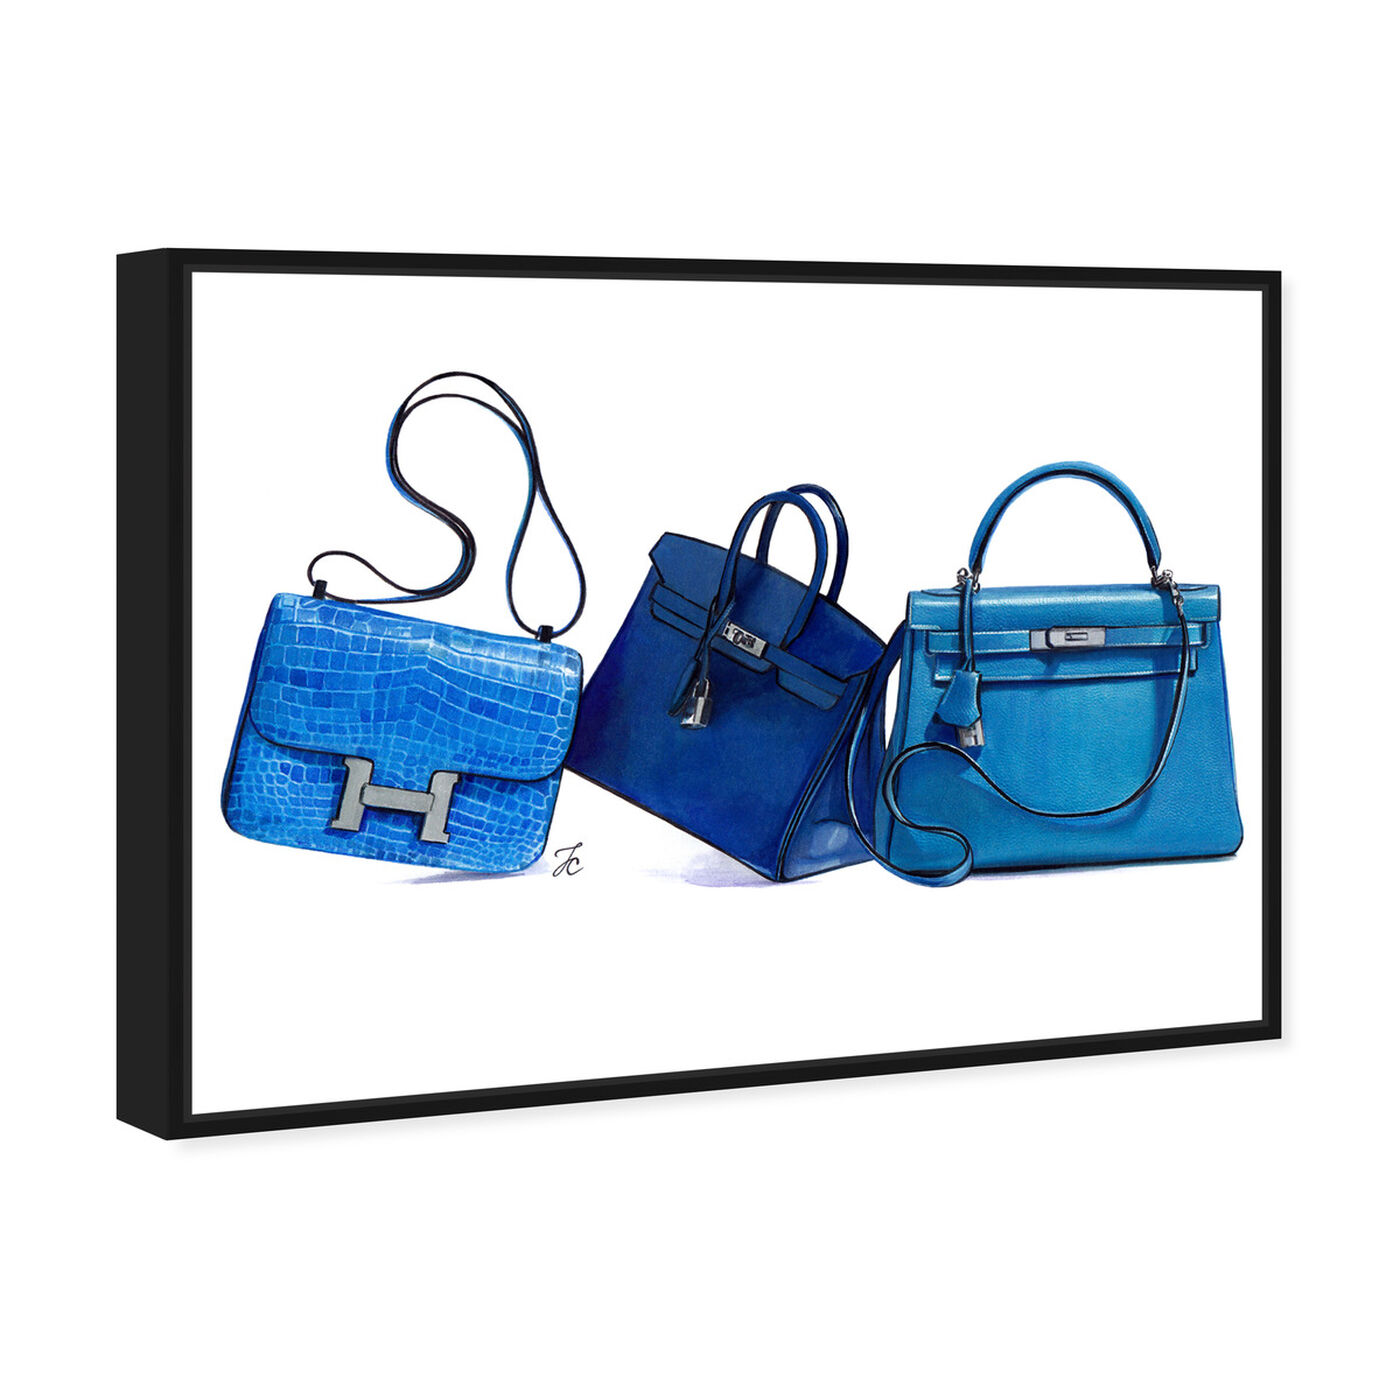 Angled view of Doll Memories - Blue Shades  I featuring fashion and glam and handbags art.